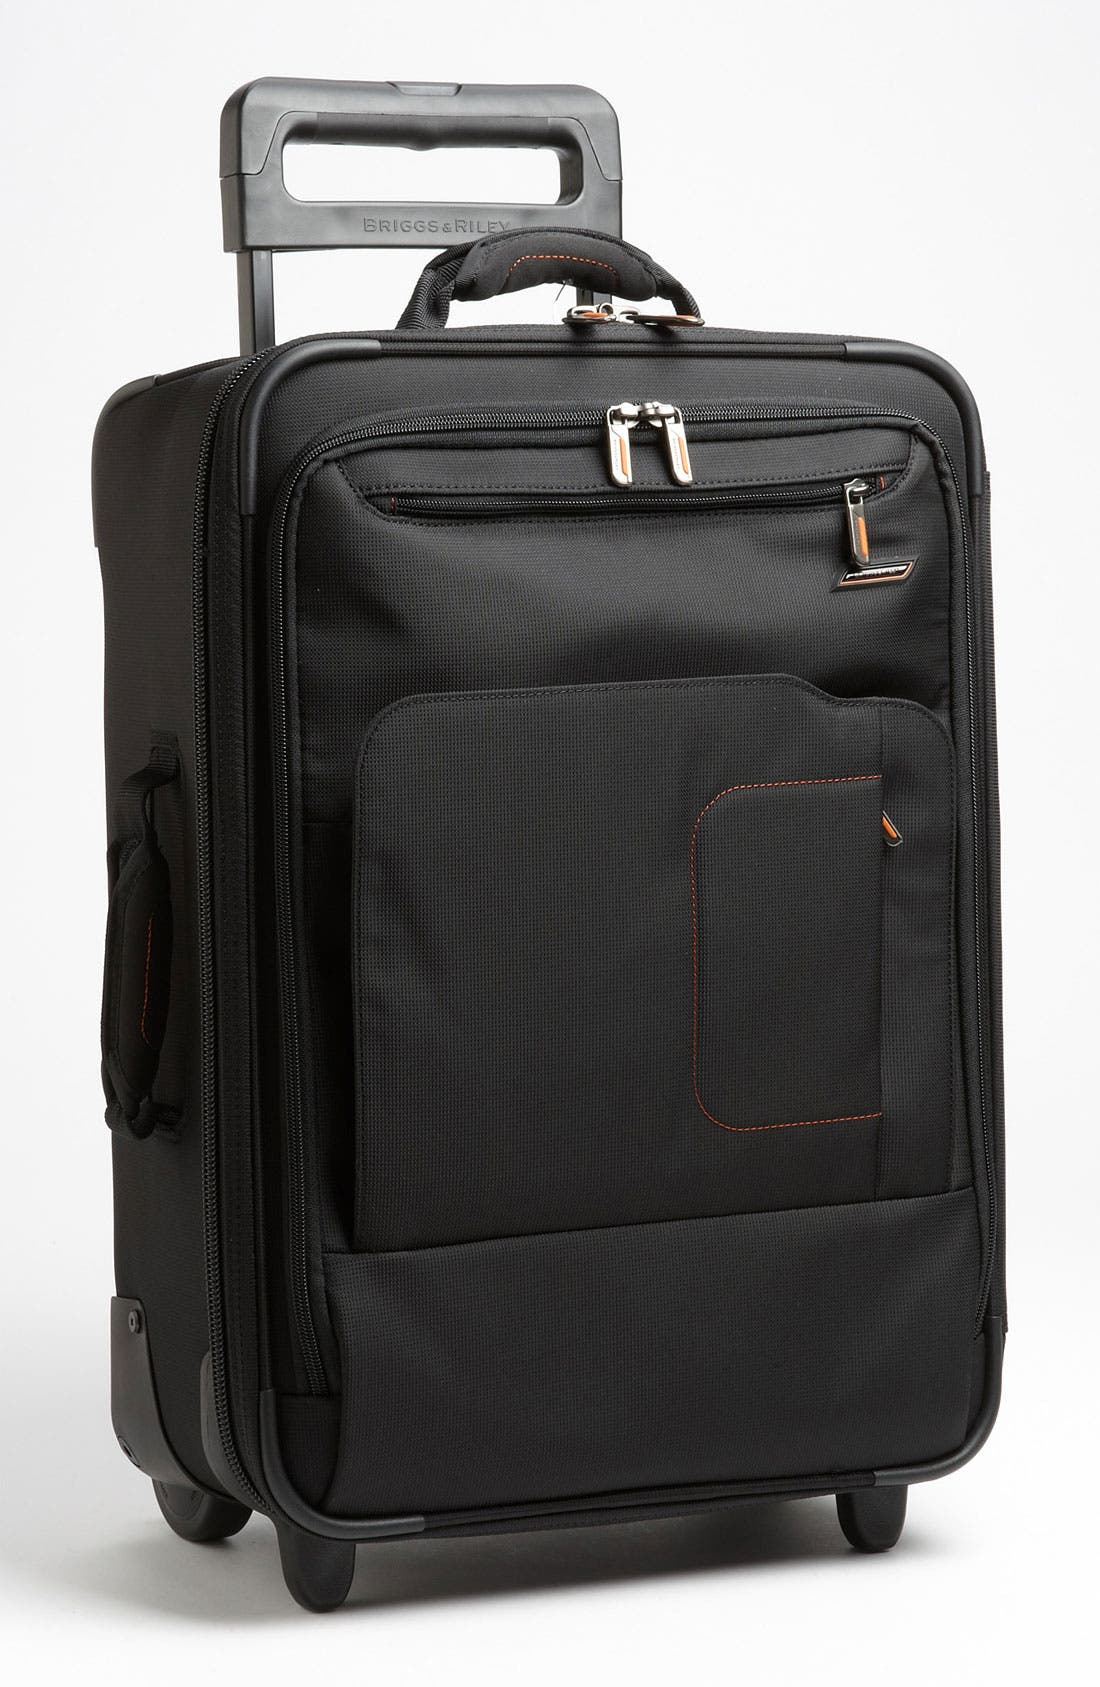 Alternate Image 1 Selected - Briggs & Riley 'Verb - Fuse' Upright Suitcase (20 Inch)